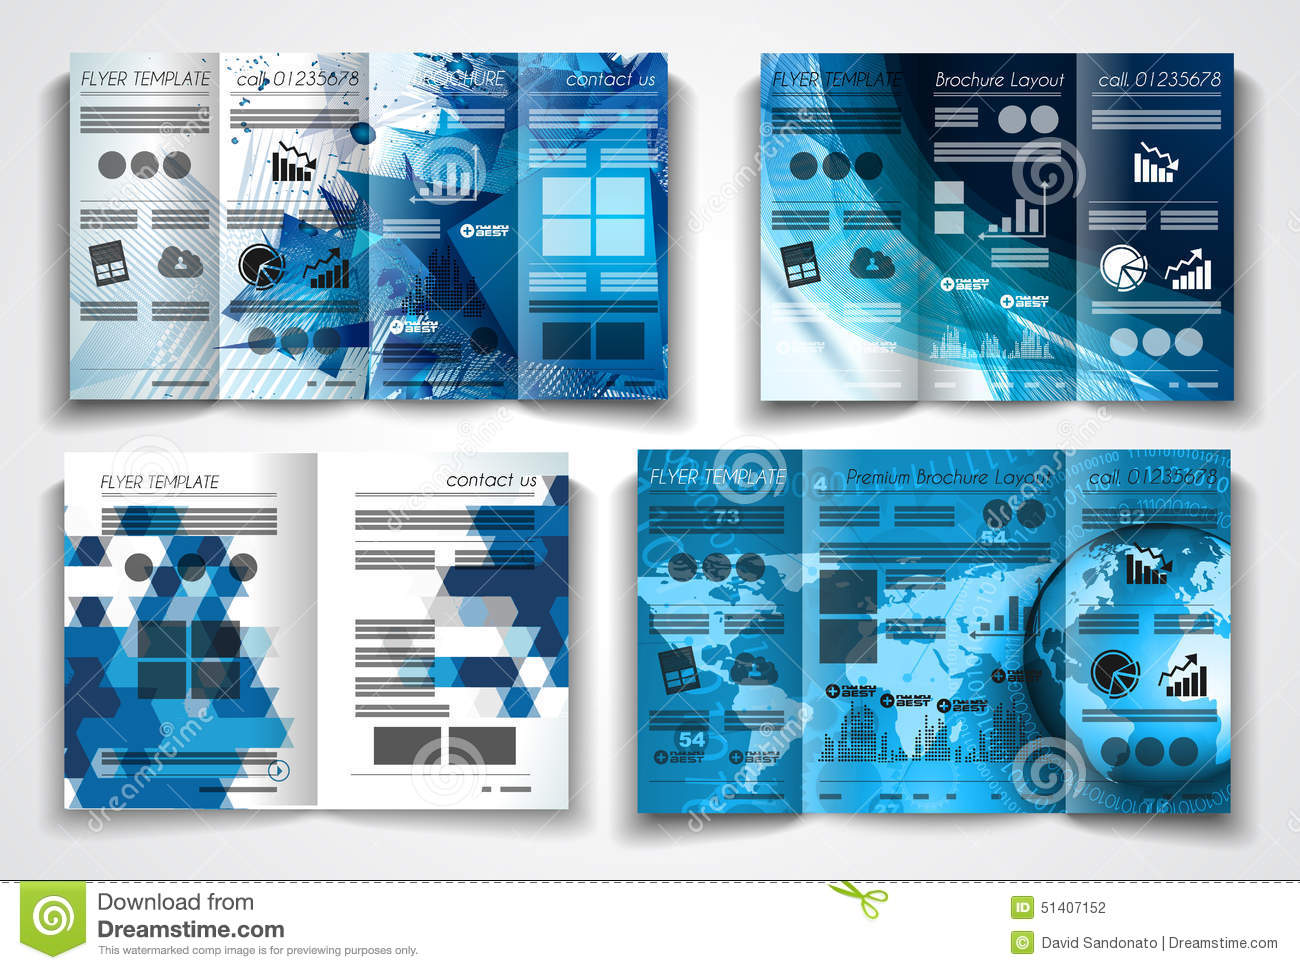 brochure layout templates - vector tri fold brochure template design or flyer layout